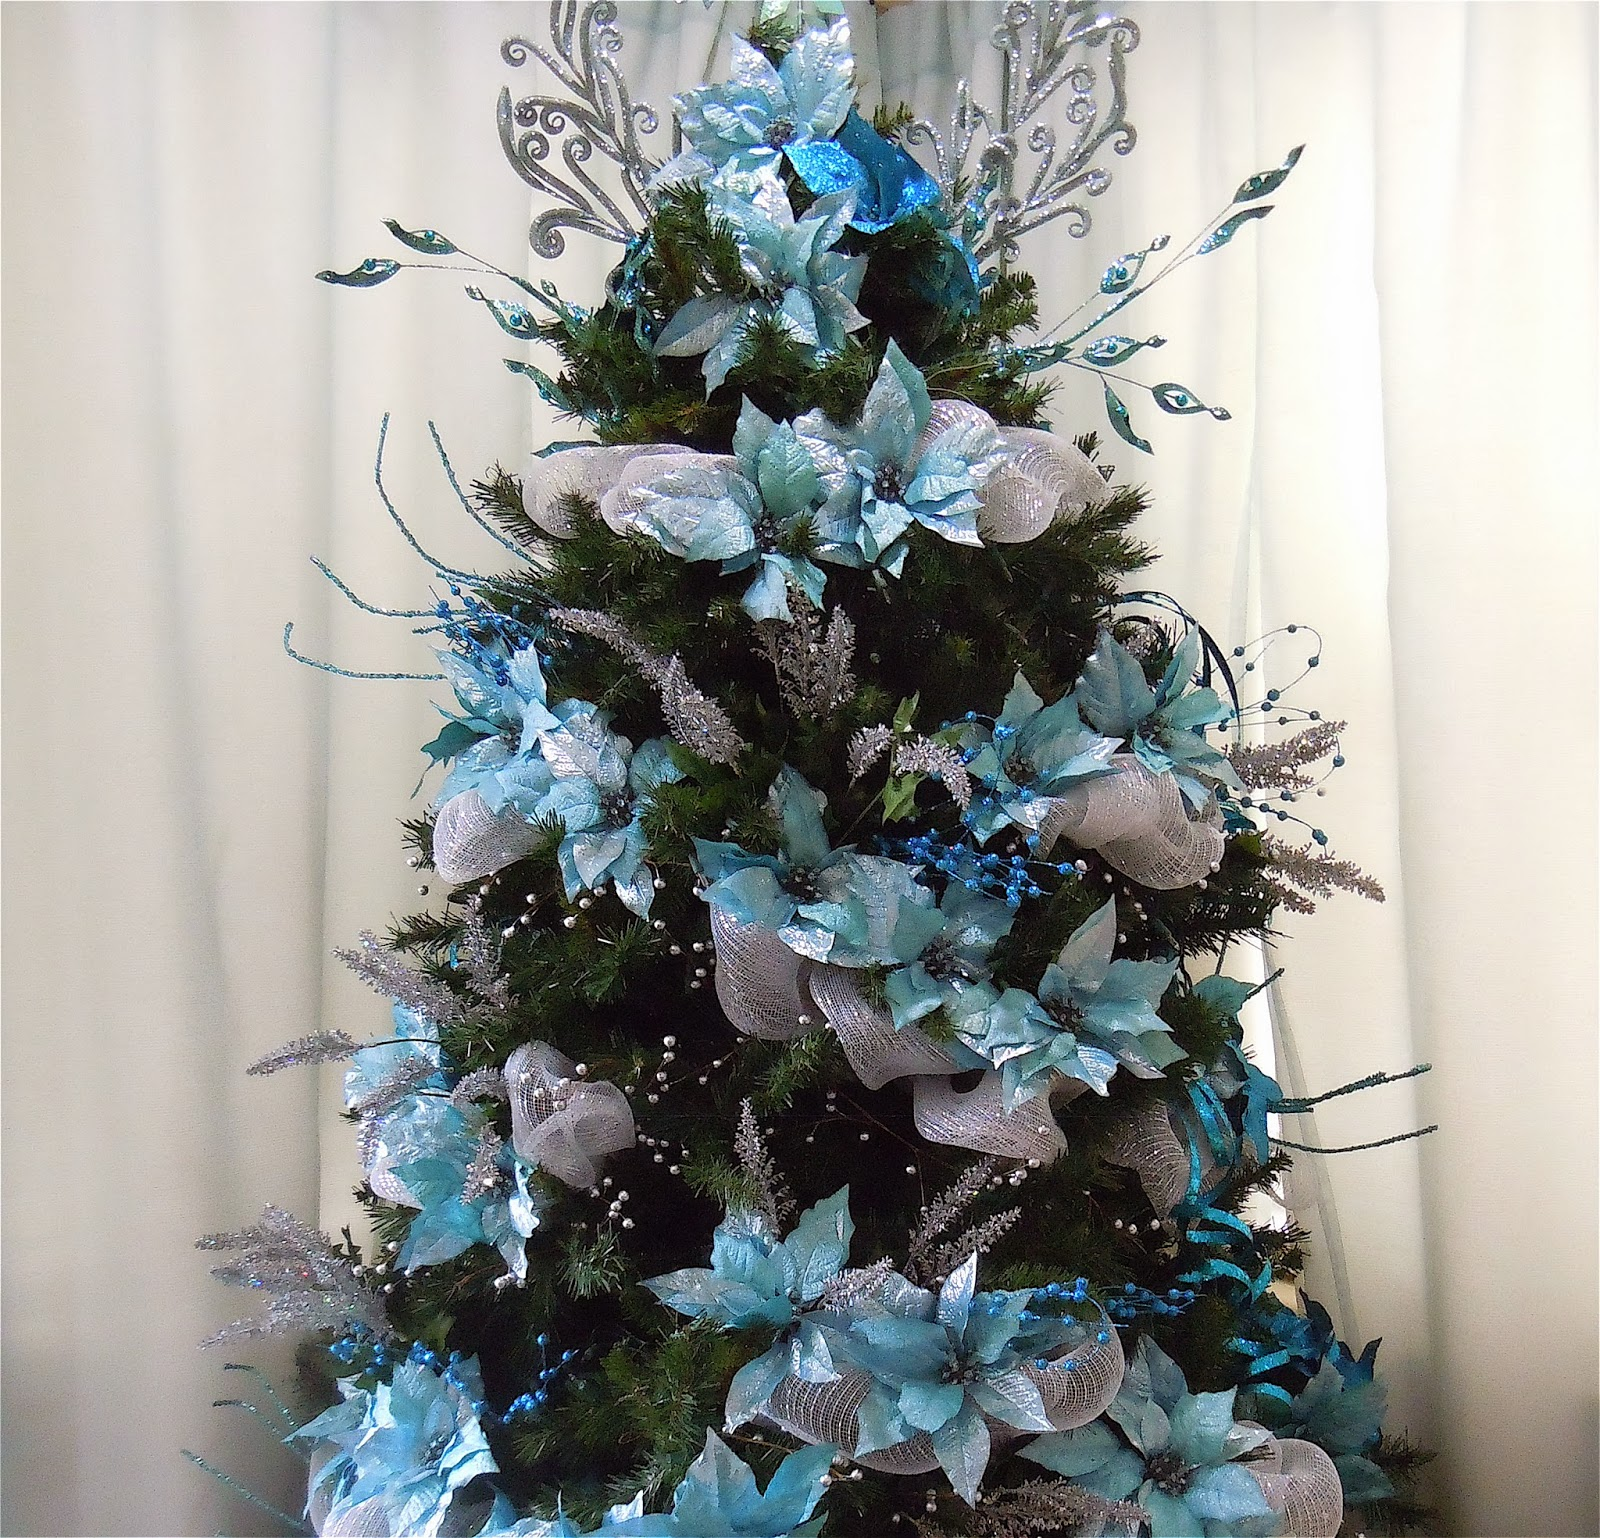 still in the initial stages of decorating just with turquoise poinsettias silver and blue picks no ornaments yet and it looks full already - Christmas Tree Blue